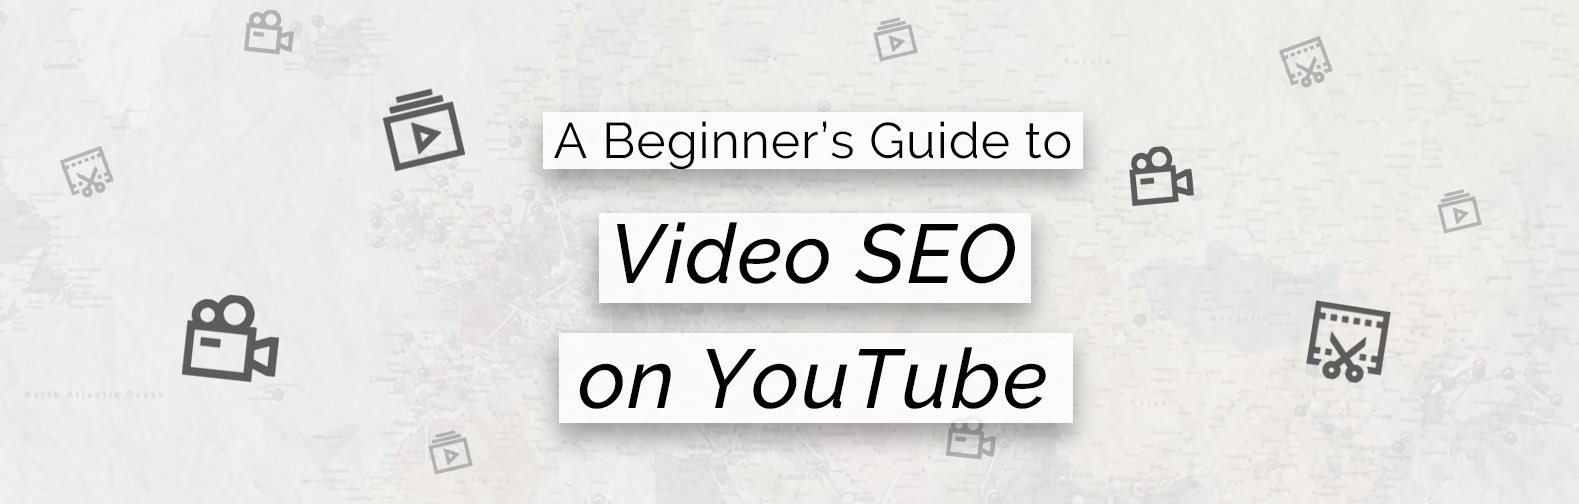 04 A Beginner's Guide to Video SEO on YouTube.jpg